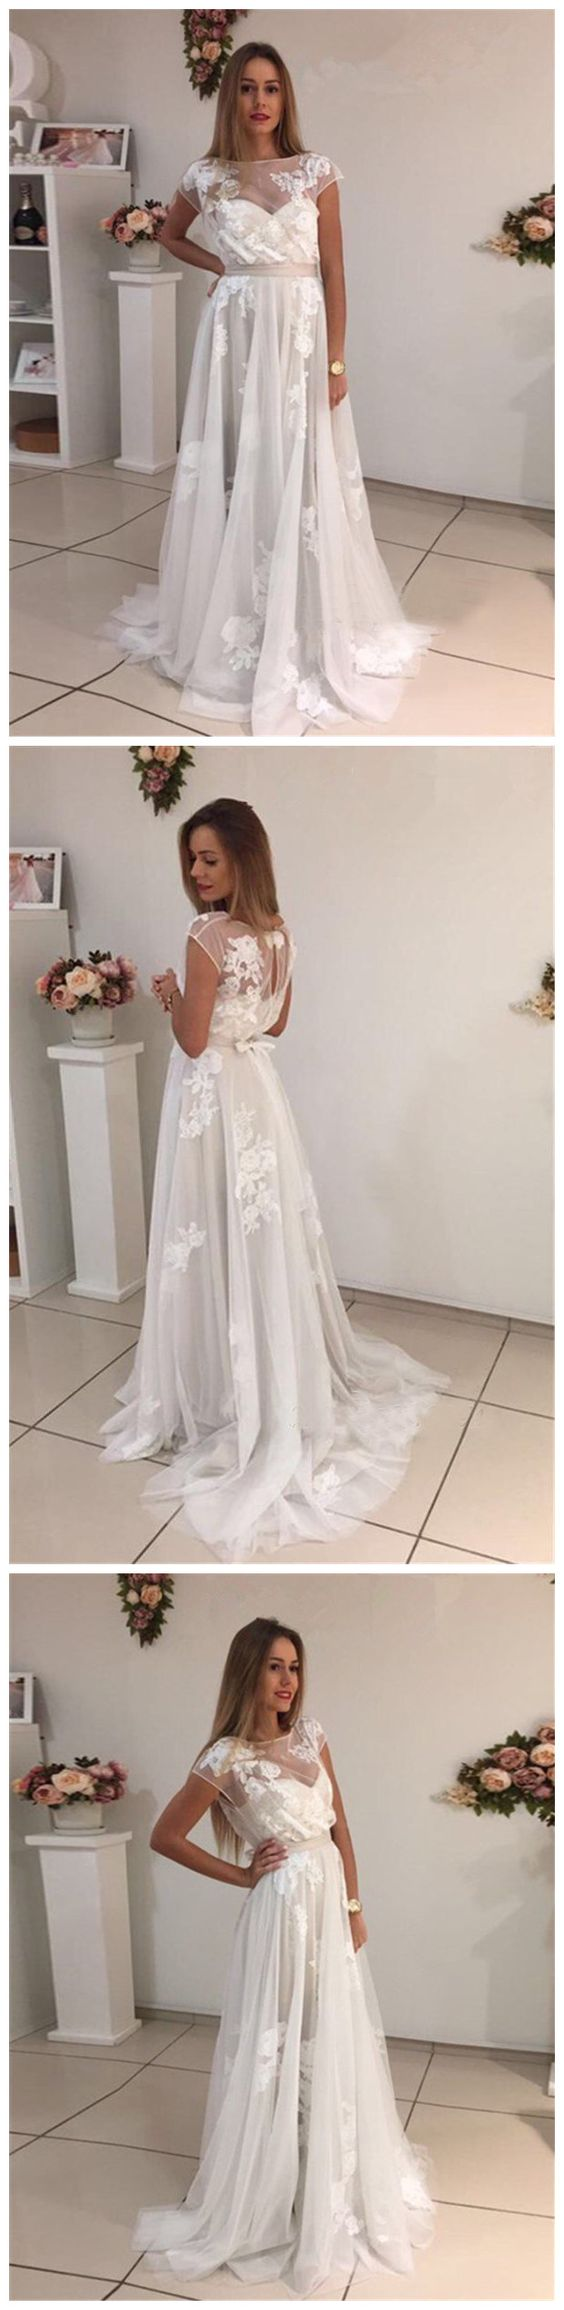 A-line Bateau Modern Lace Ivory Short Sleeve Prom Dress Modest Evening Dress  , Y0490